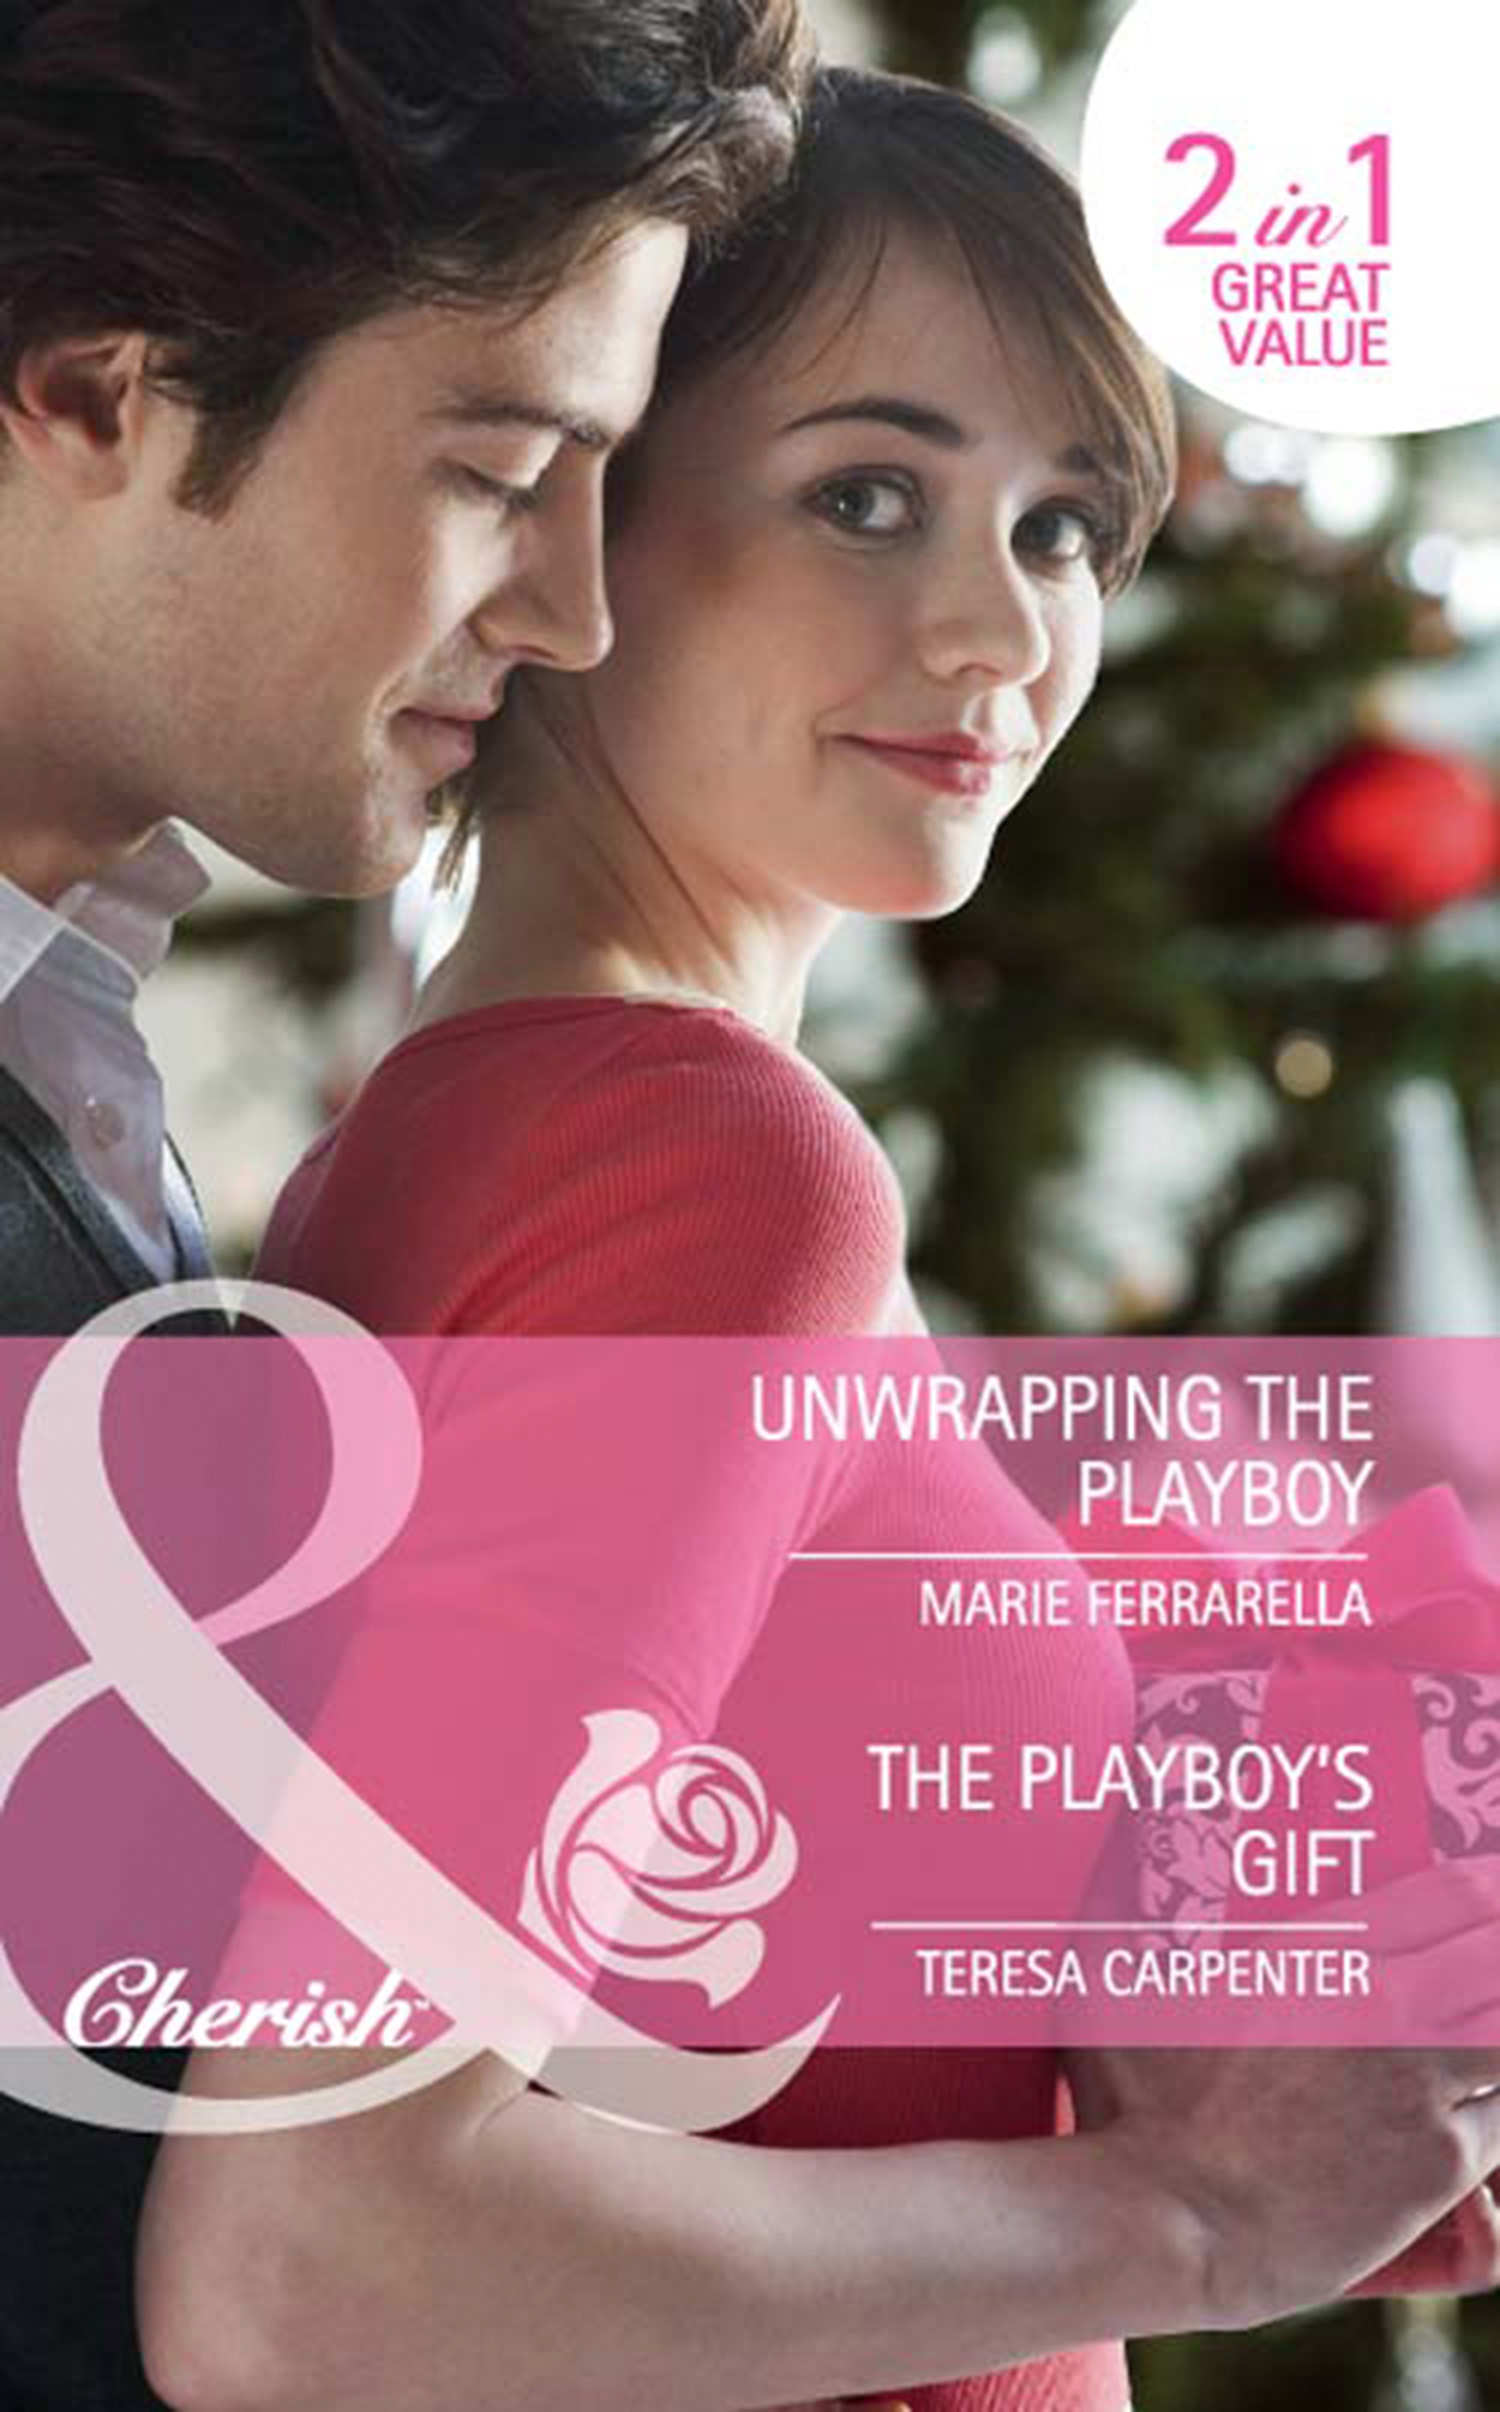 Unwrapping the Playboy / The Playboy's Gift